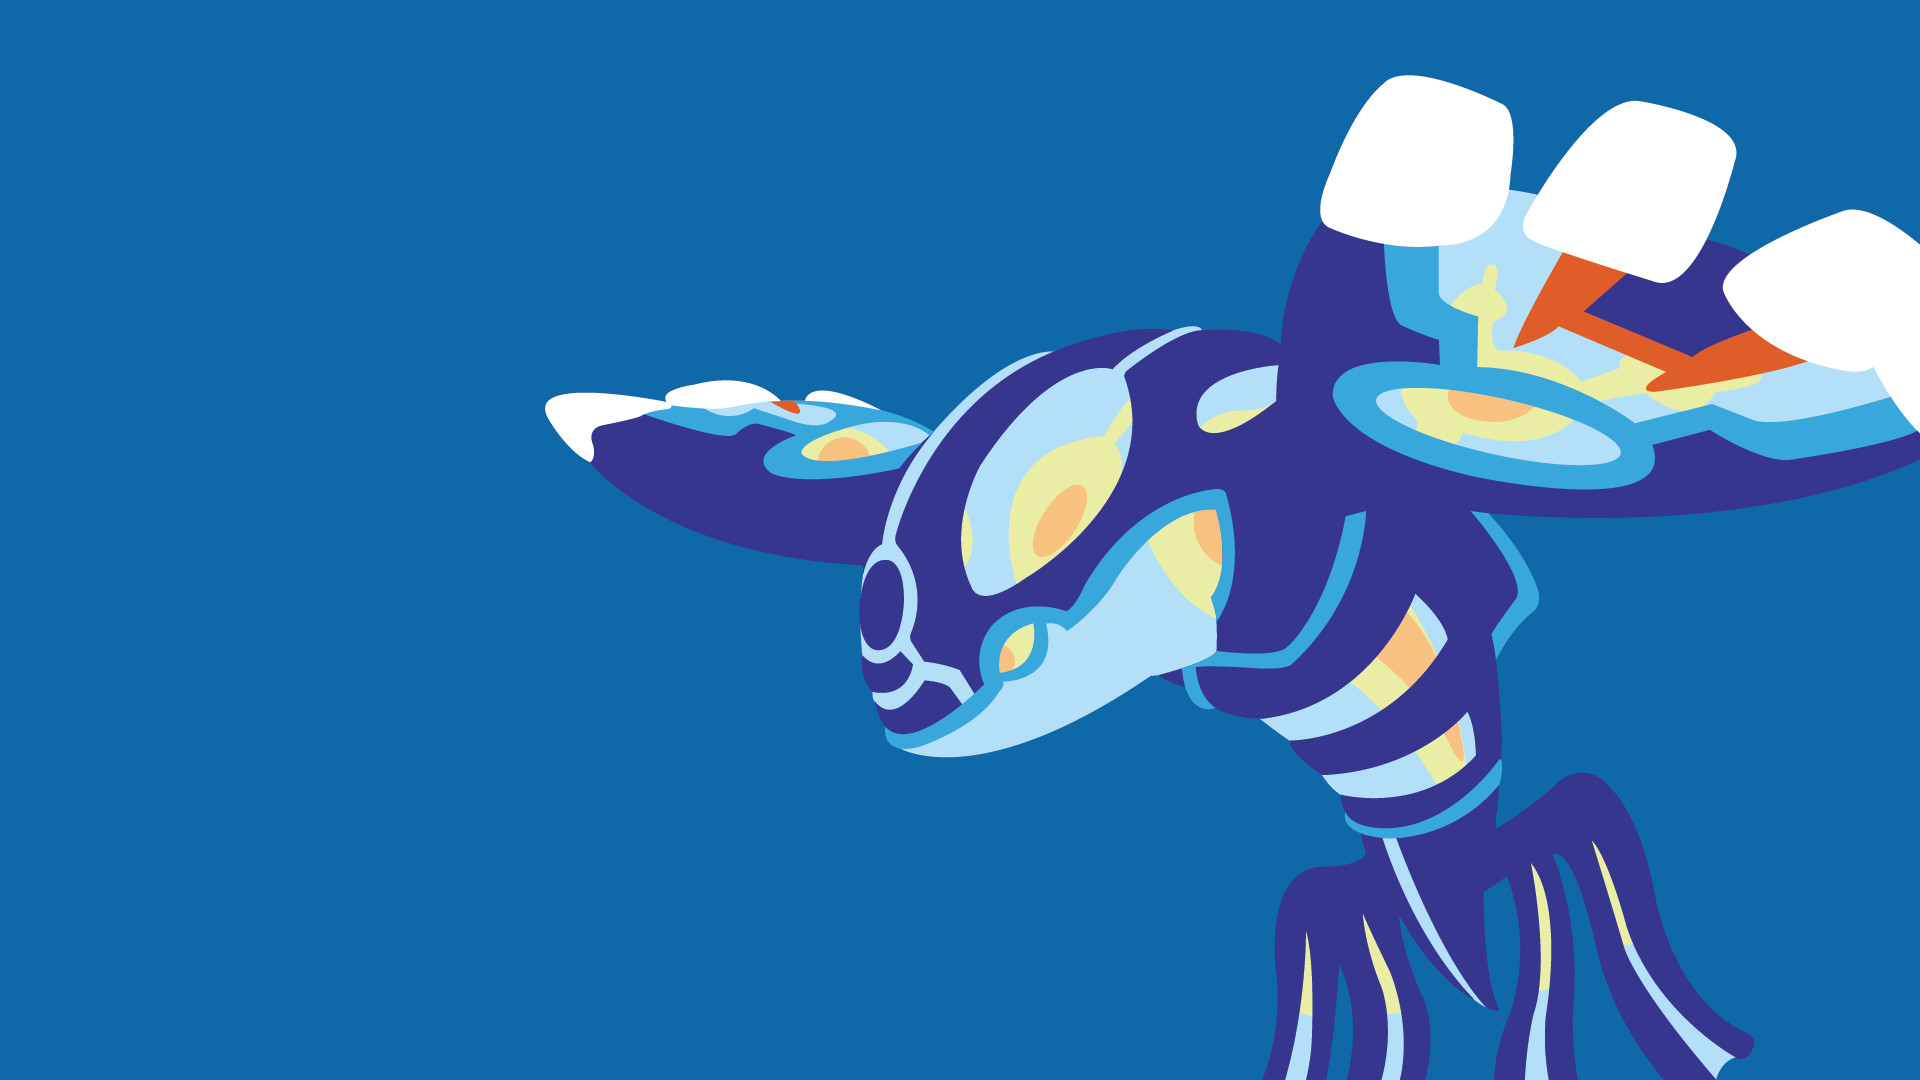 Res: 1920x1080, Kyogre Wallpapers - Wallpaper Cave